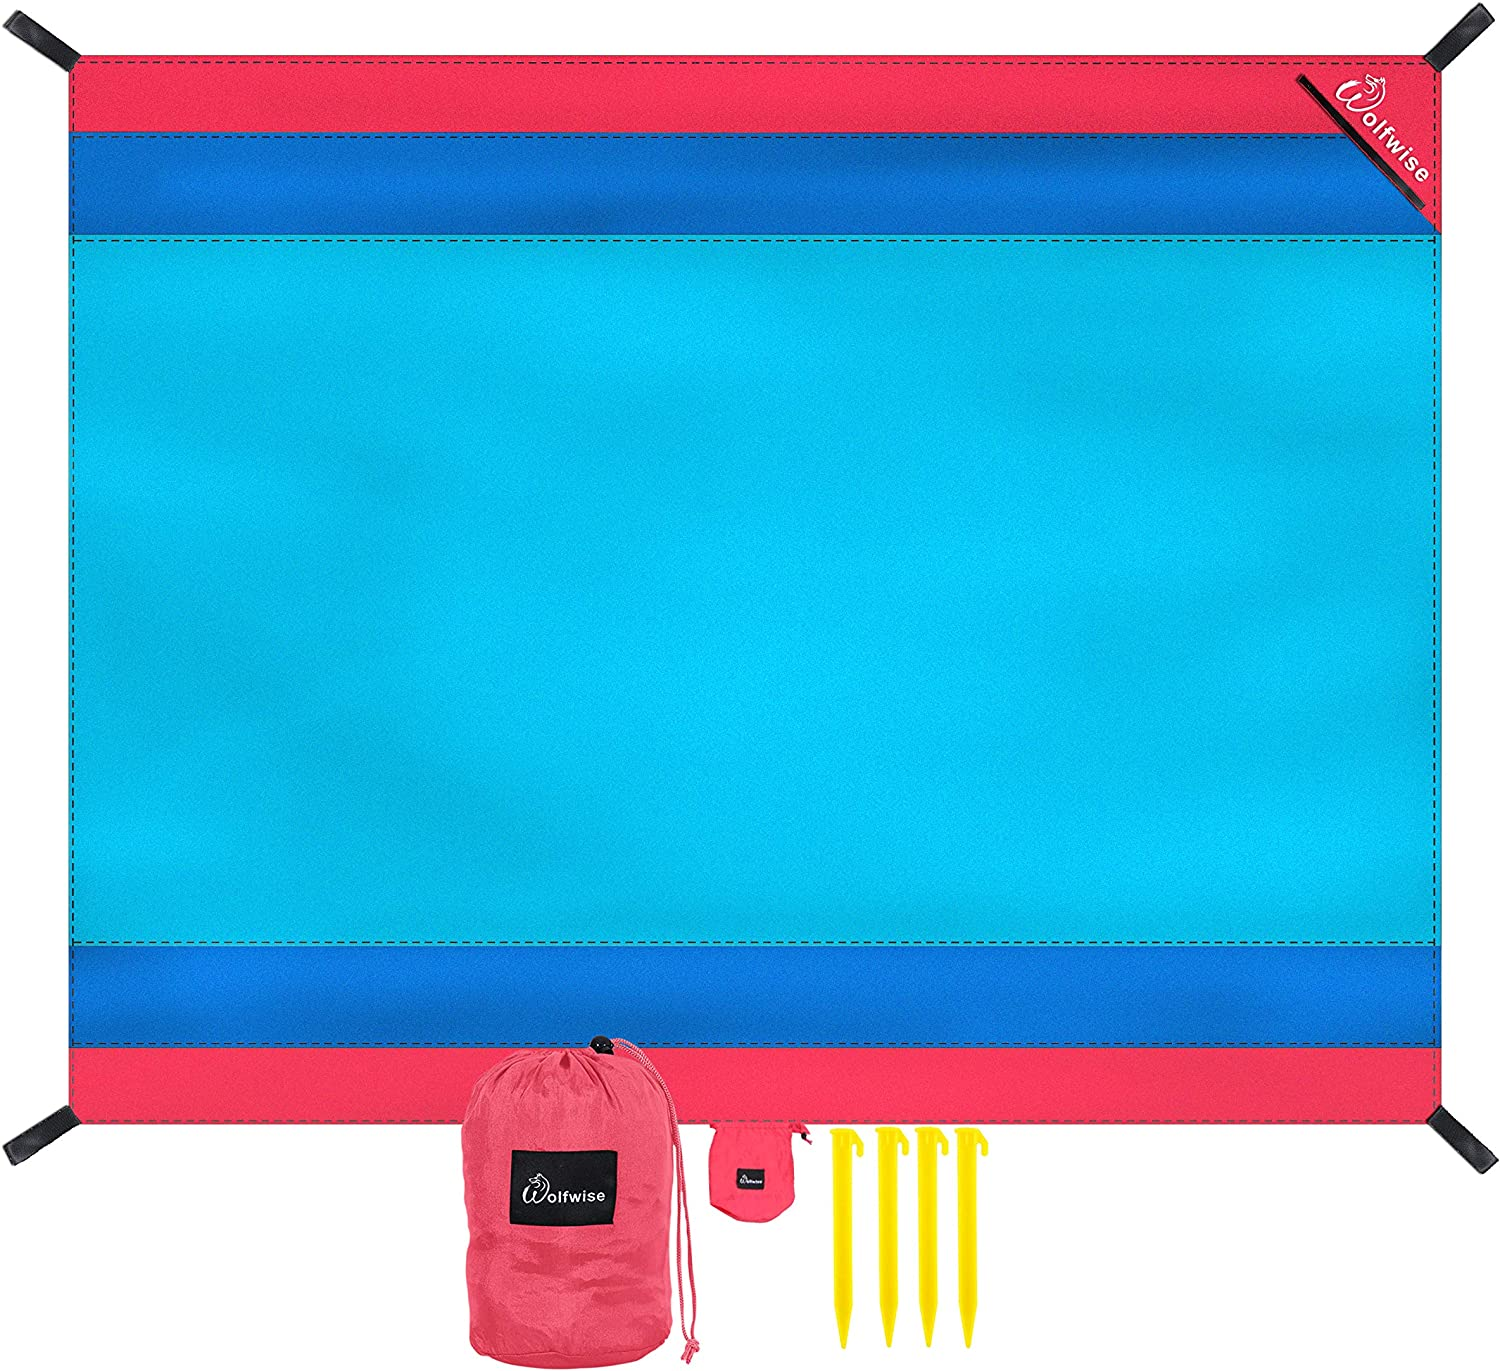 WolfWise Sandfree Beach Blanket,40D Nylon Waterproof Beach Mat Extra Large Compact Picnic Mat for beach Travel, Camping, Hiking and Music Festivals, Lightweight with 4 Stakes,Blue